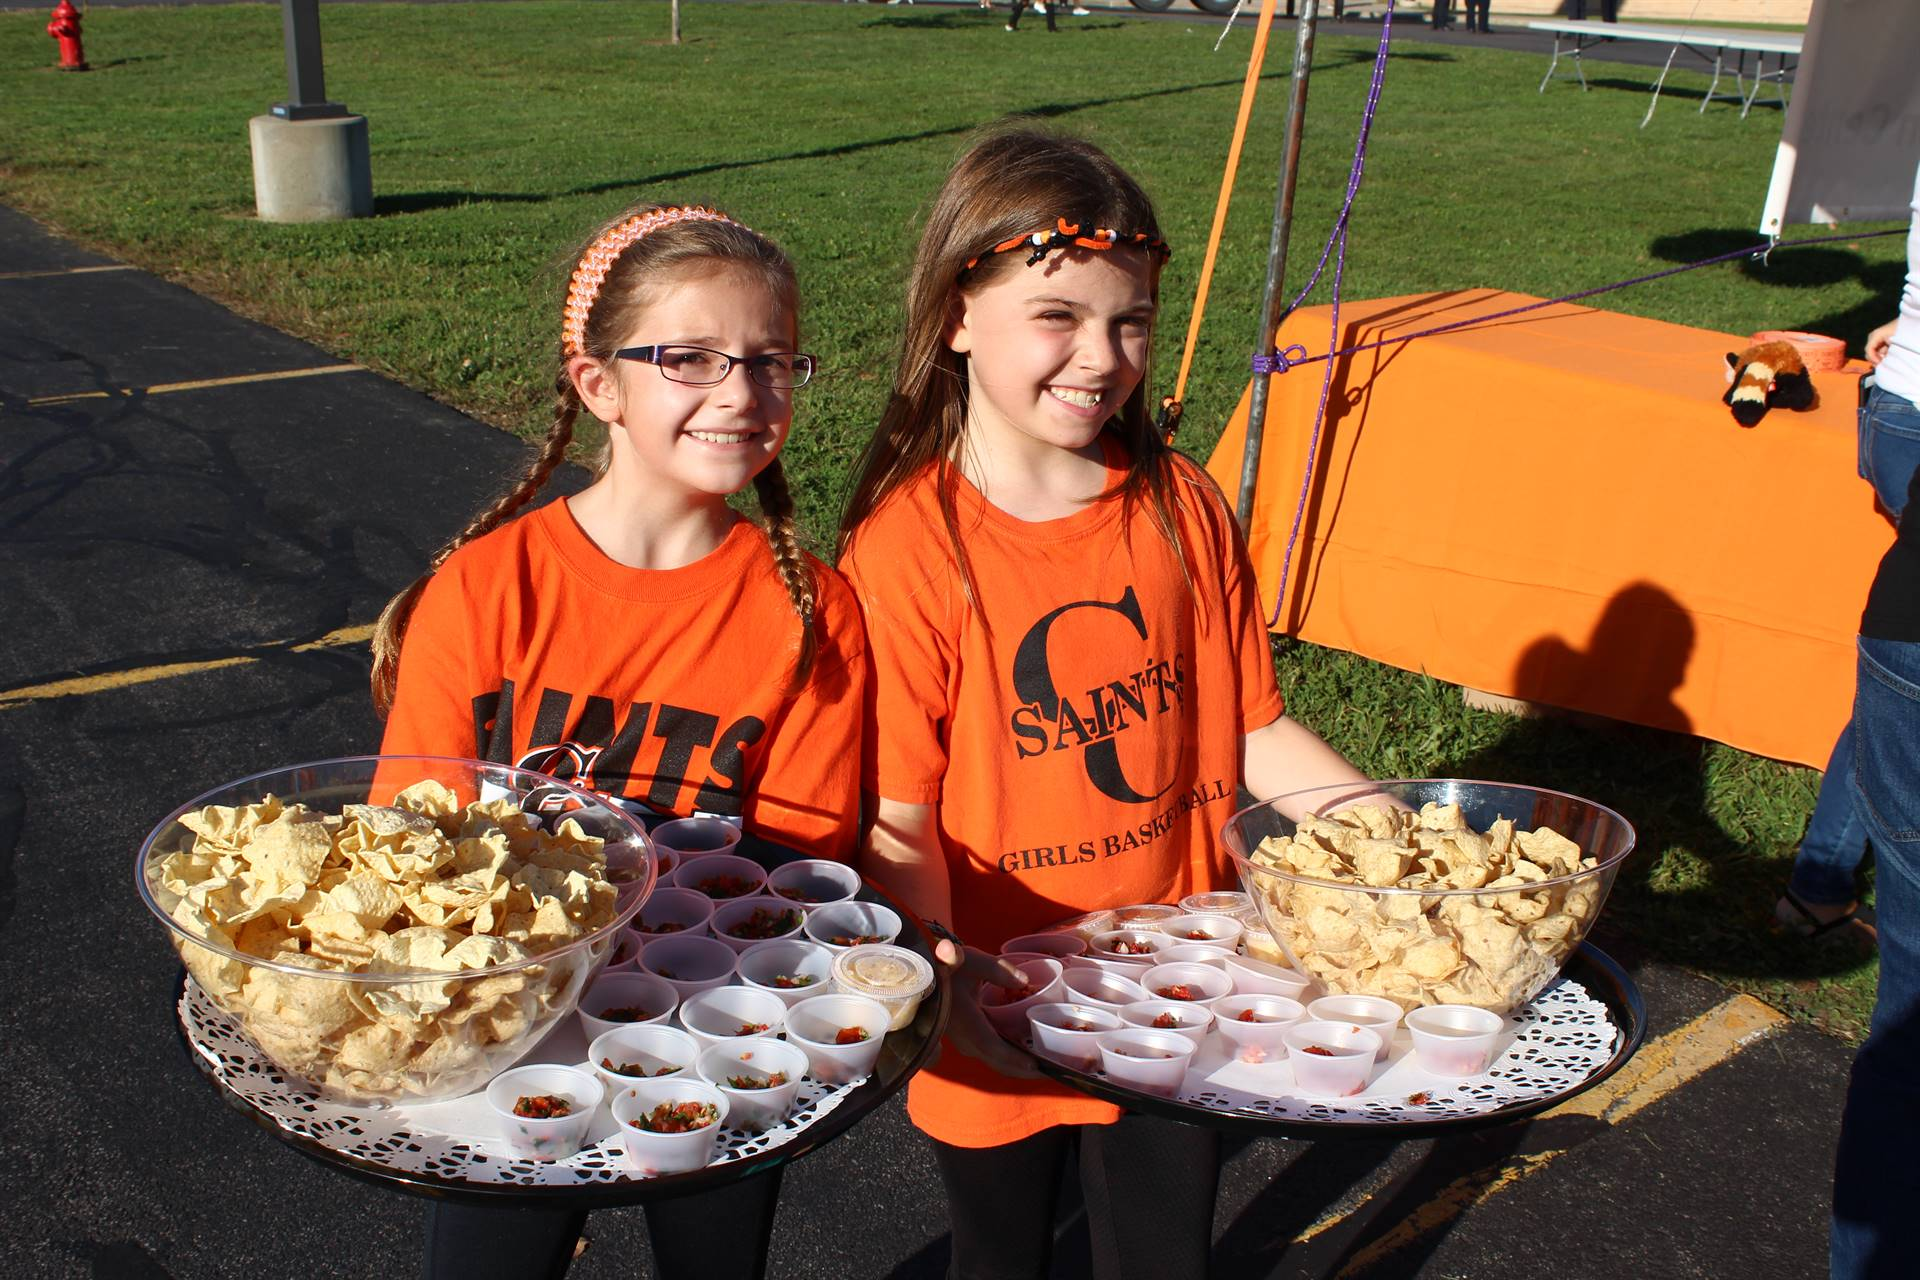 Two young students serving chips and salsa.